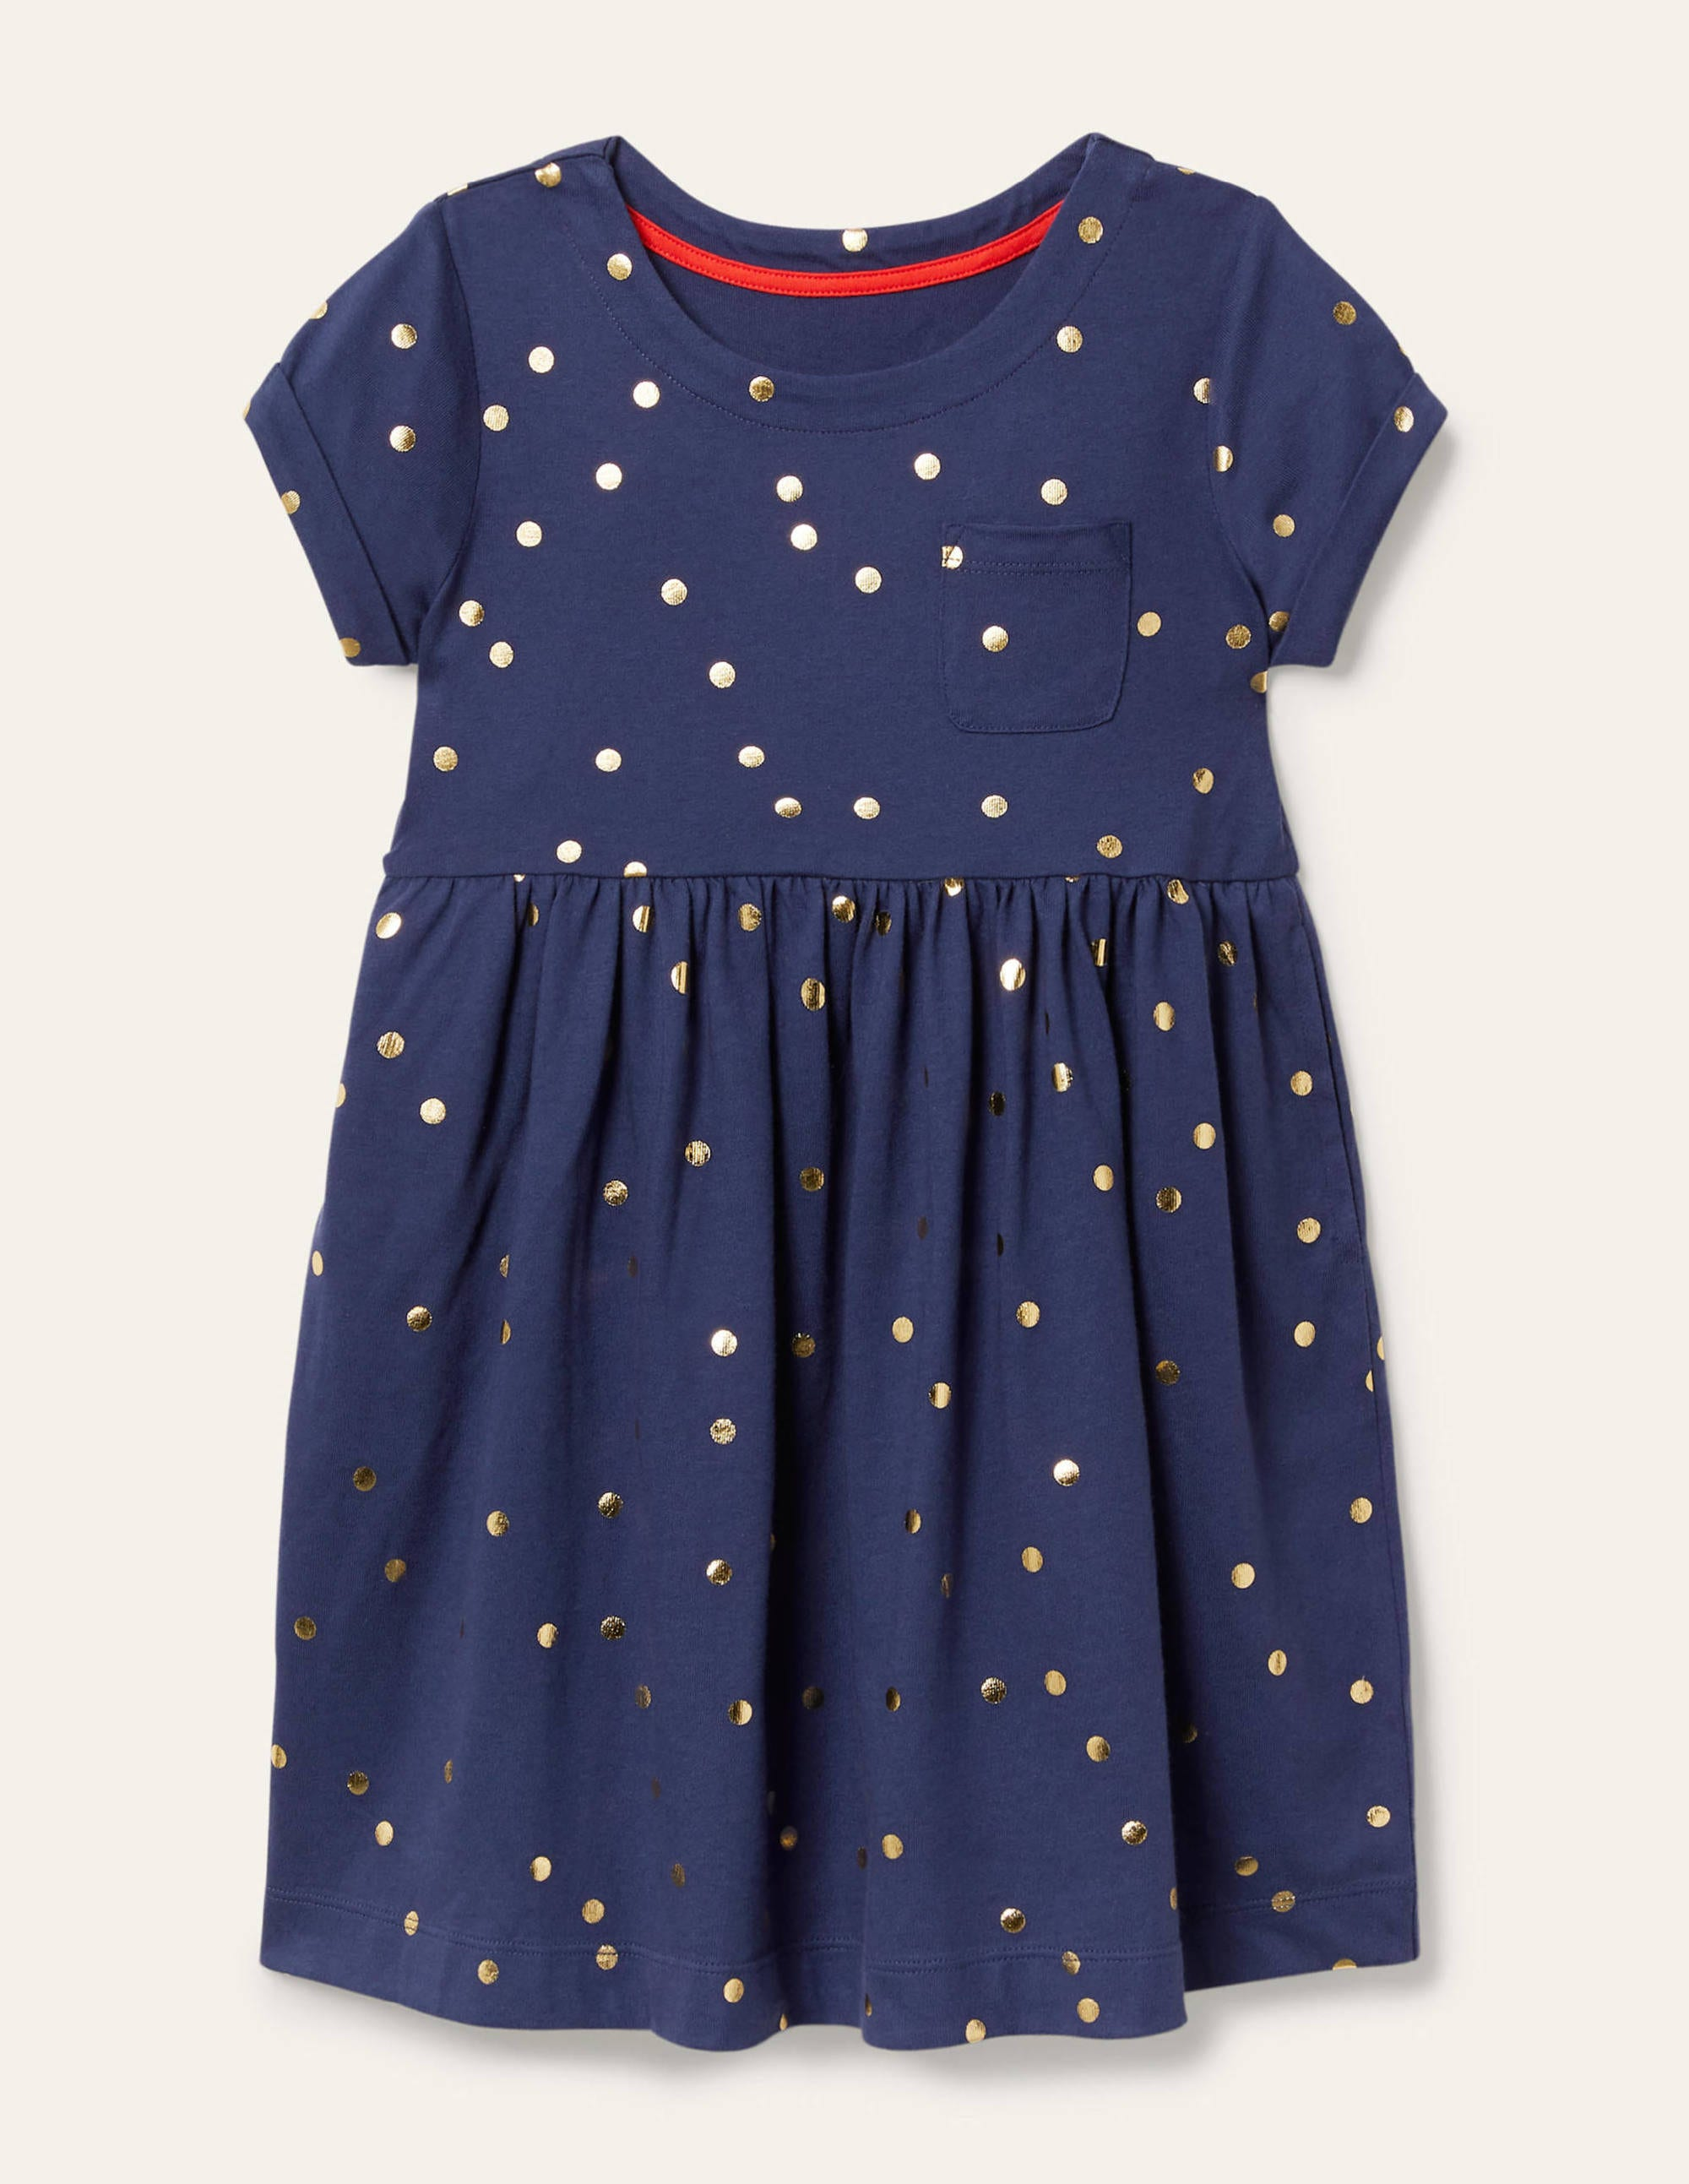 Boden Fun Jersey Dress - Starboard Blue Gold Spot